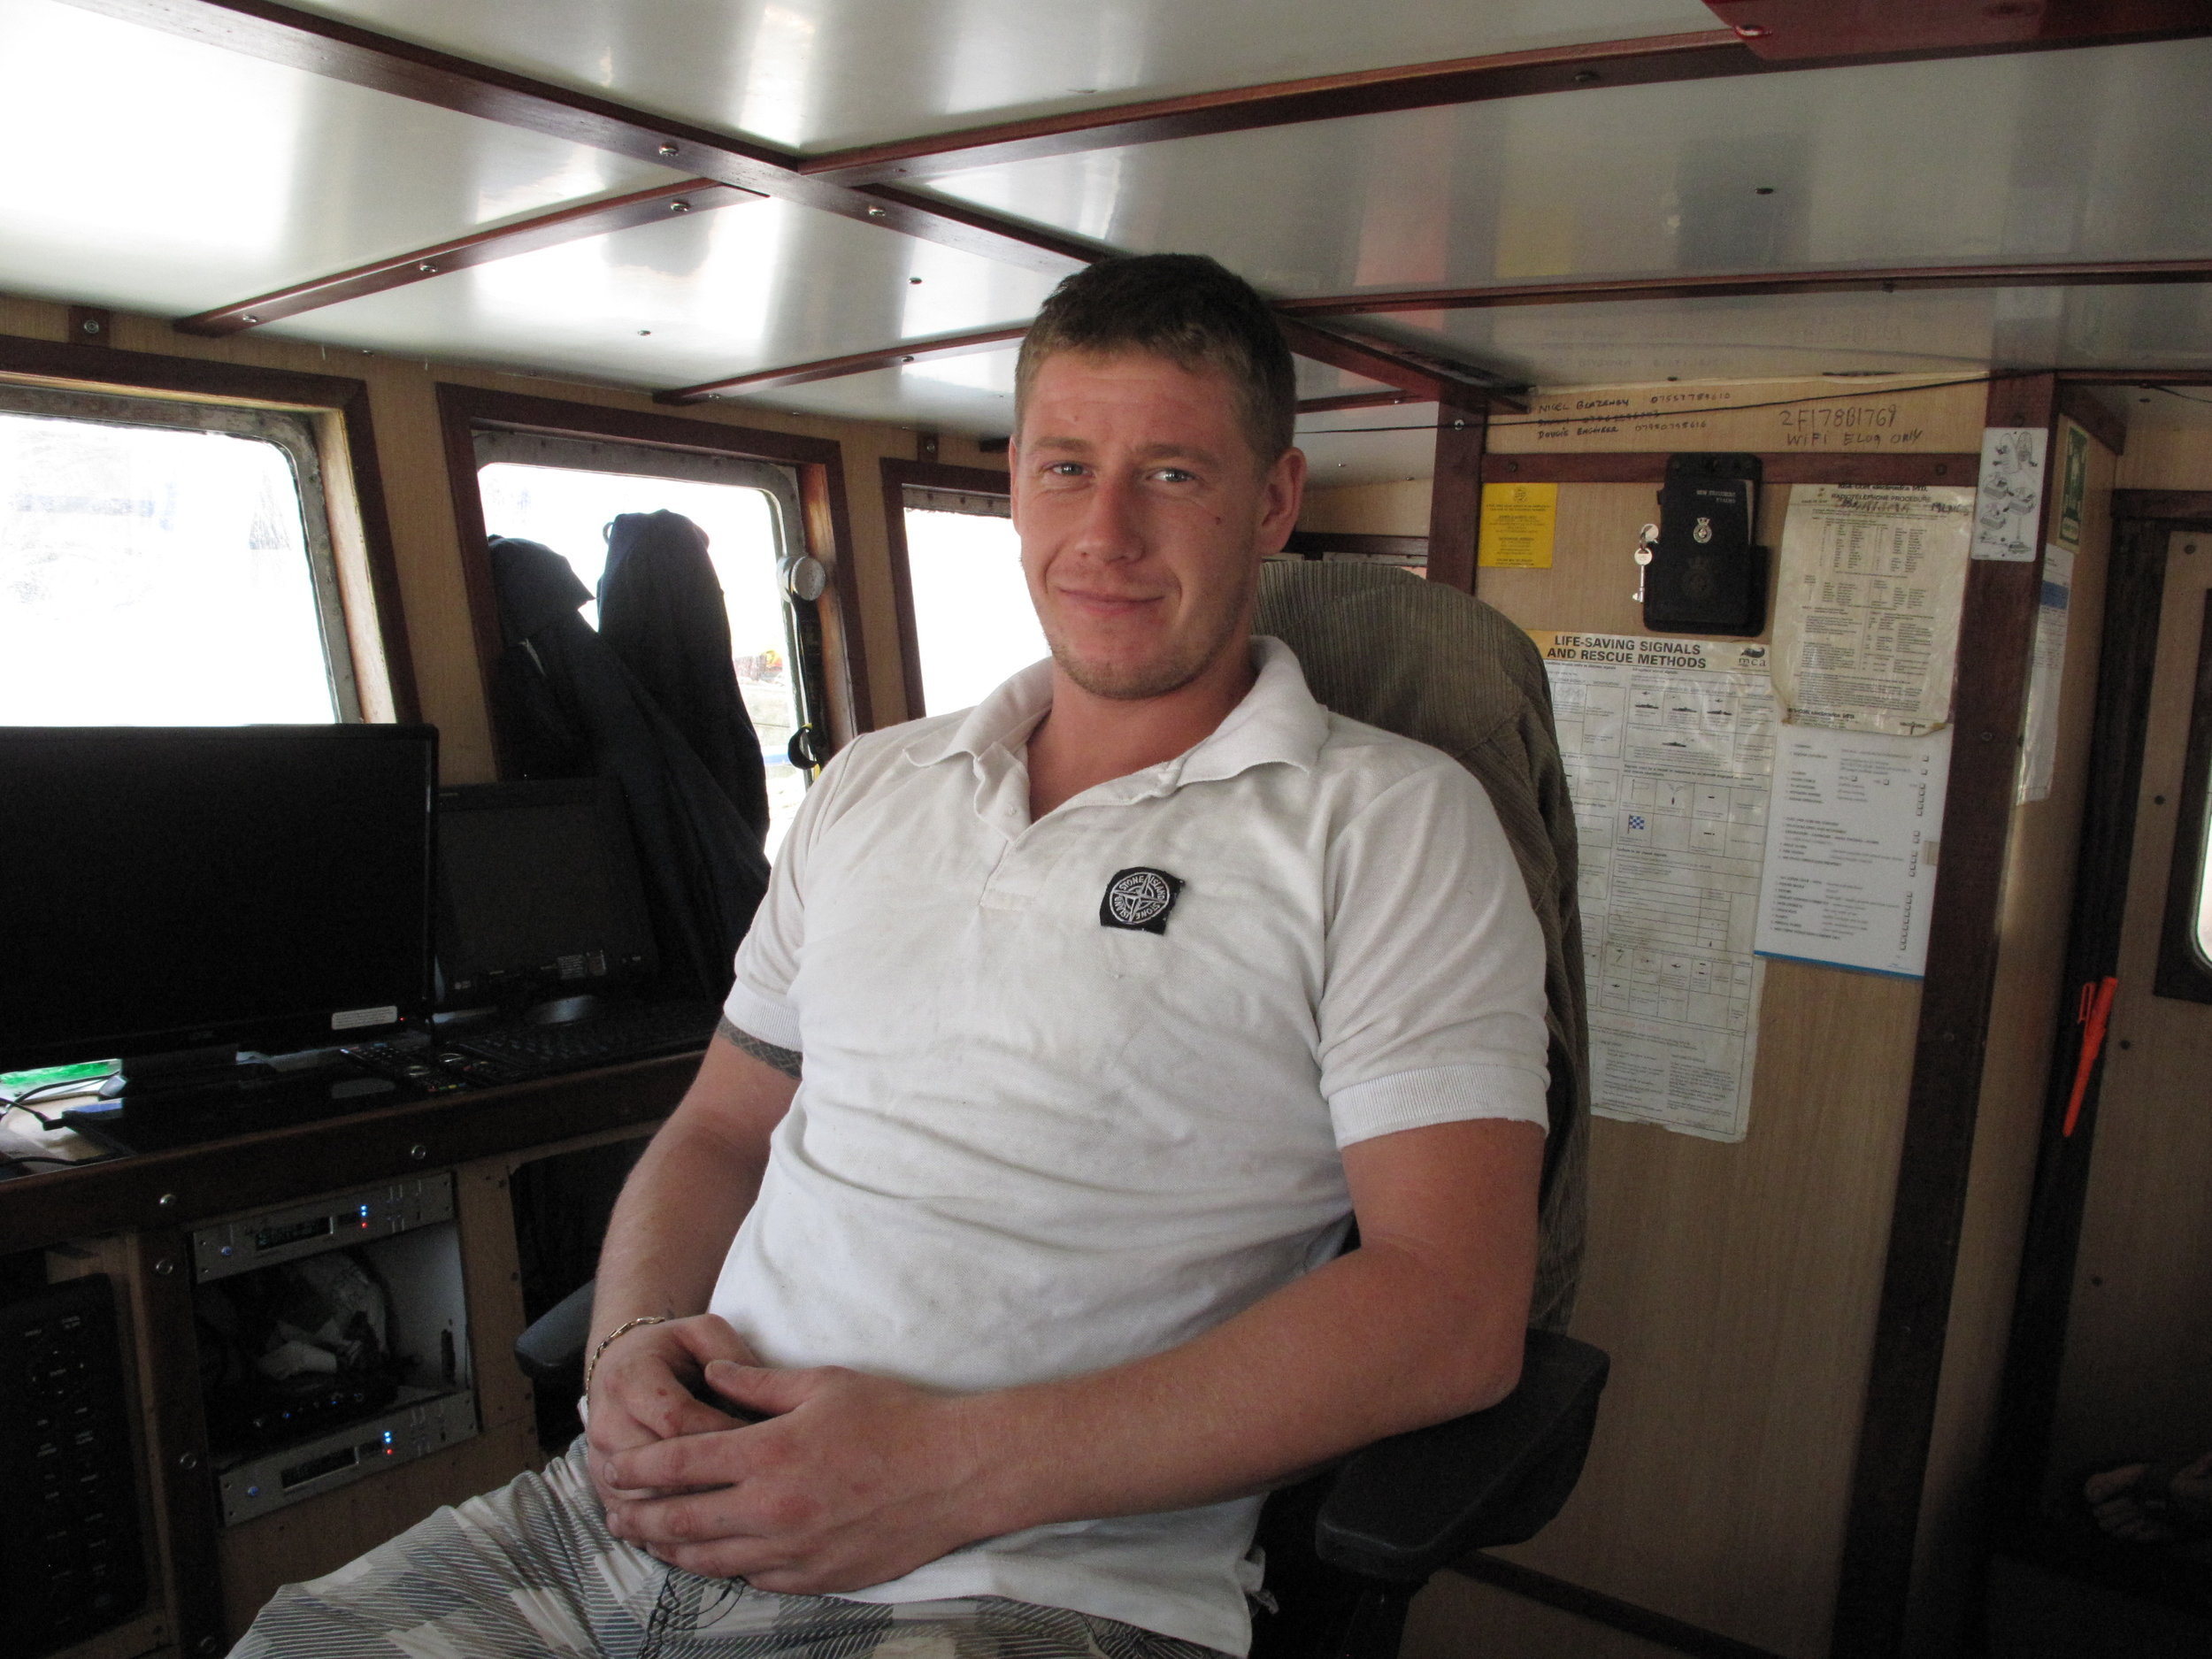 Skipper: Stacey Gambrill - Today Charisma's skipper Stacey Gambrill is one of the youngest in the fleet. Still in his twenties, he has plenty of experience behind him, staring with Phil Mitchell on the Govenek of Ladram, before spending seven years fishing with Jim Mitchell, first on the Gary M and then as deck boss on Waterdance's Joy of Ladram. 'I learned a lot from him,' said Stacey Gambrill, who always looks forward to the turbot and brill fishery in the summer as the most interesting time of year. 'If you watch a lot, then you learn a lot.'